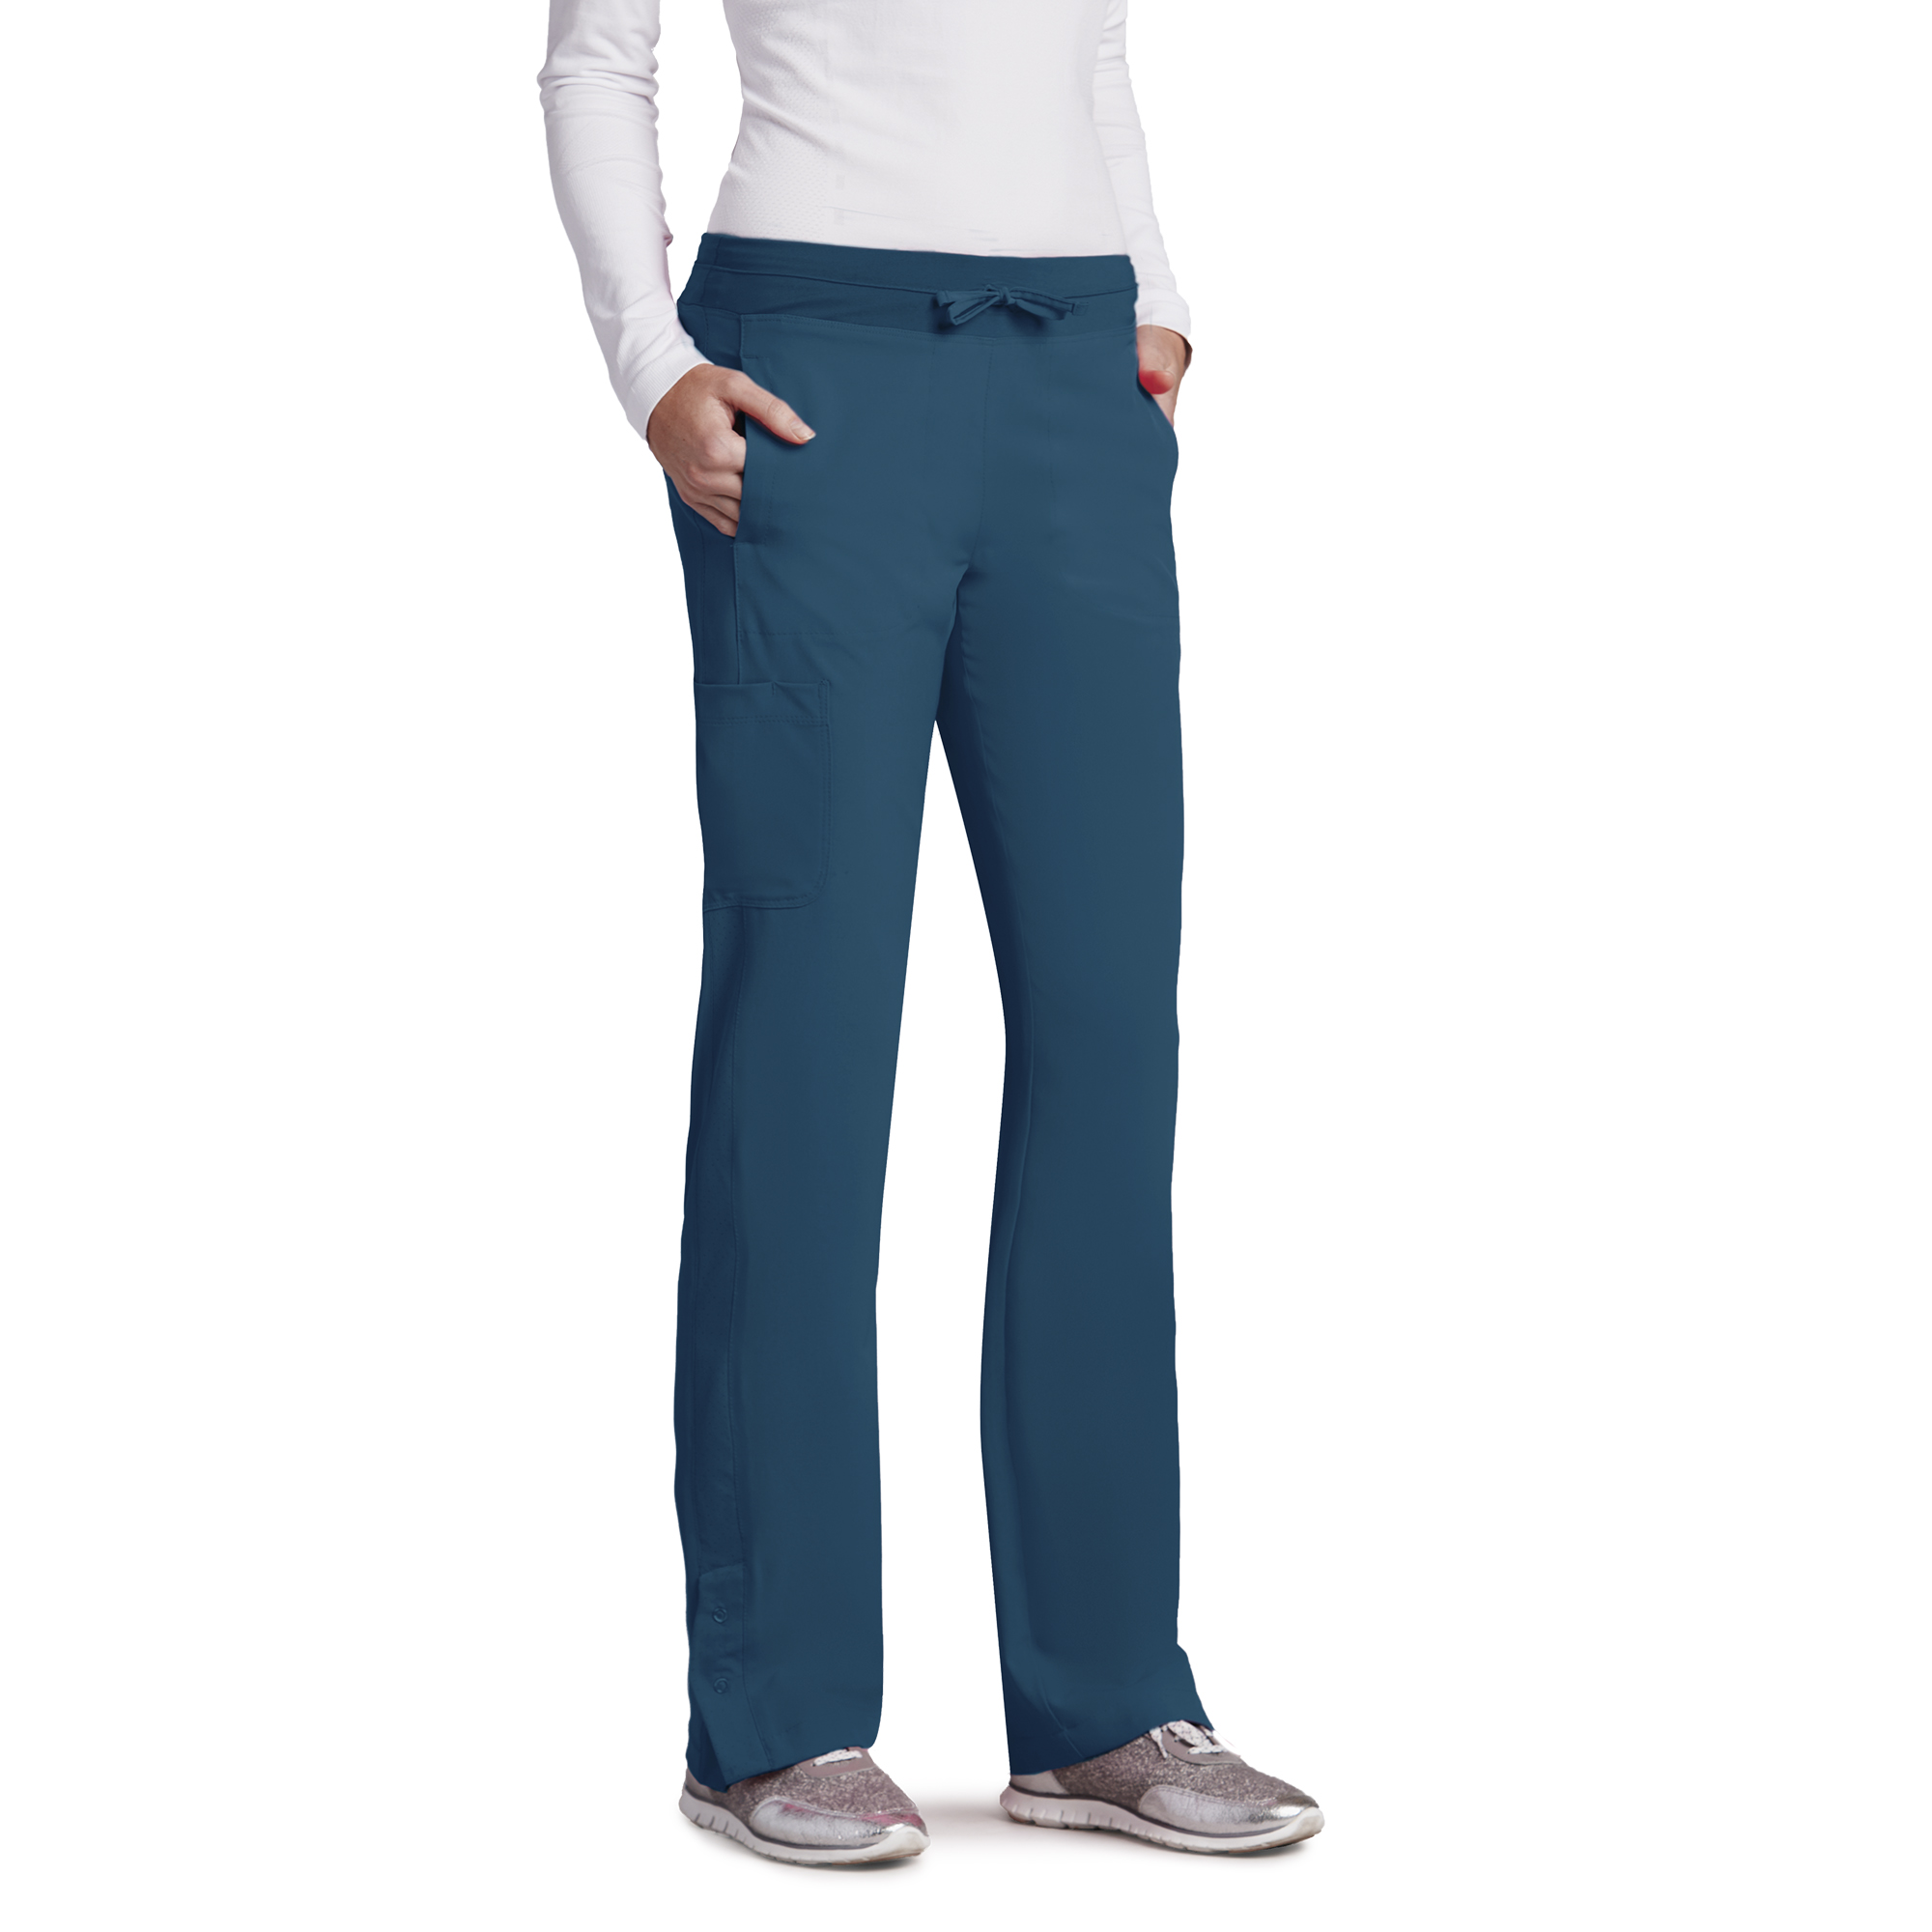 Barco One 4 Pocket Knit Waist Seamed Pant-Barco One